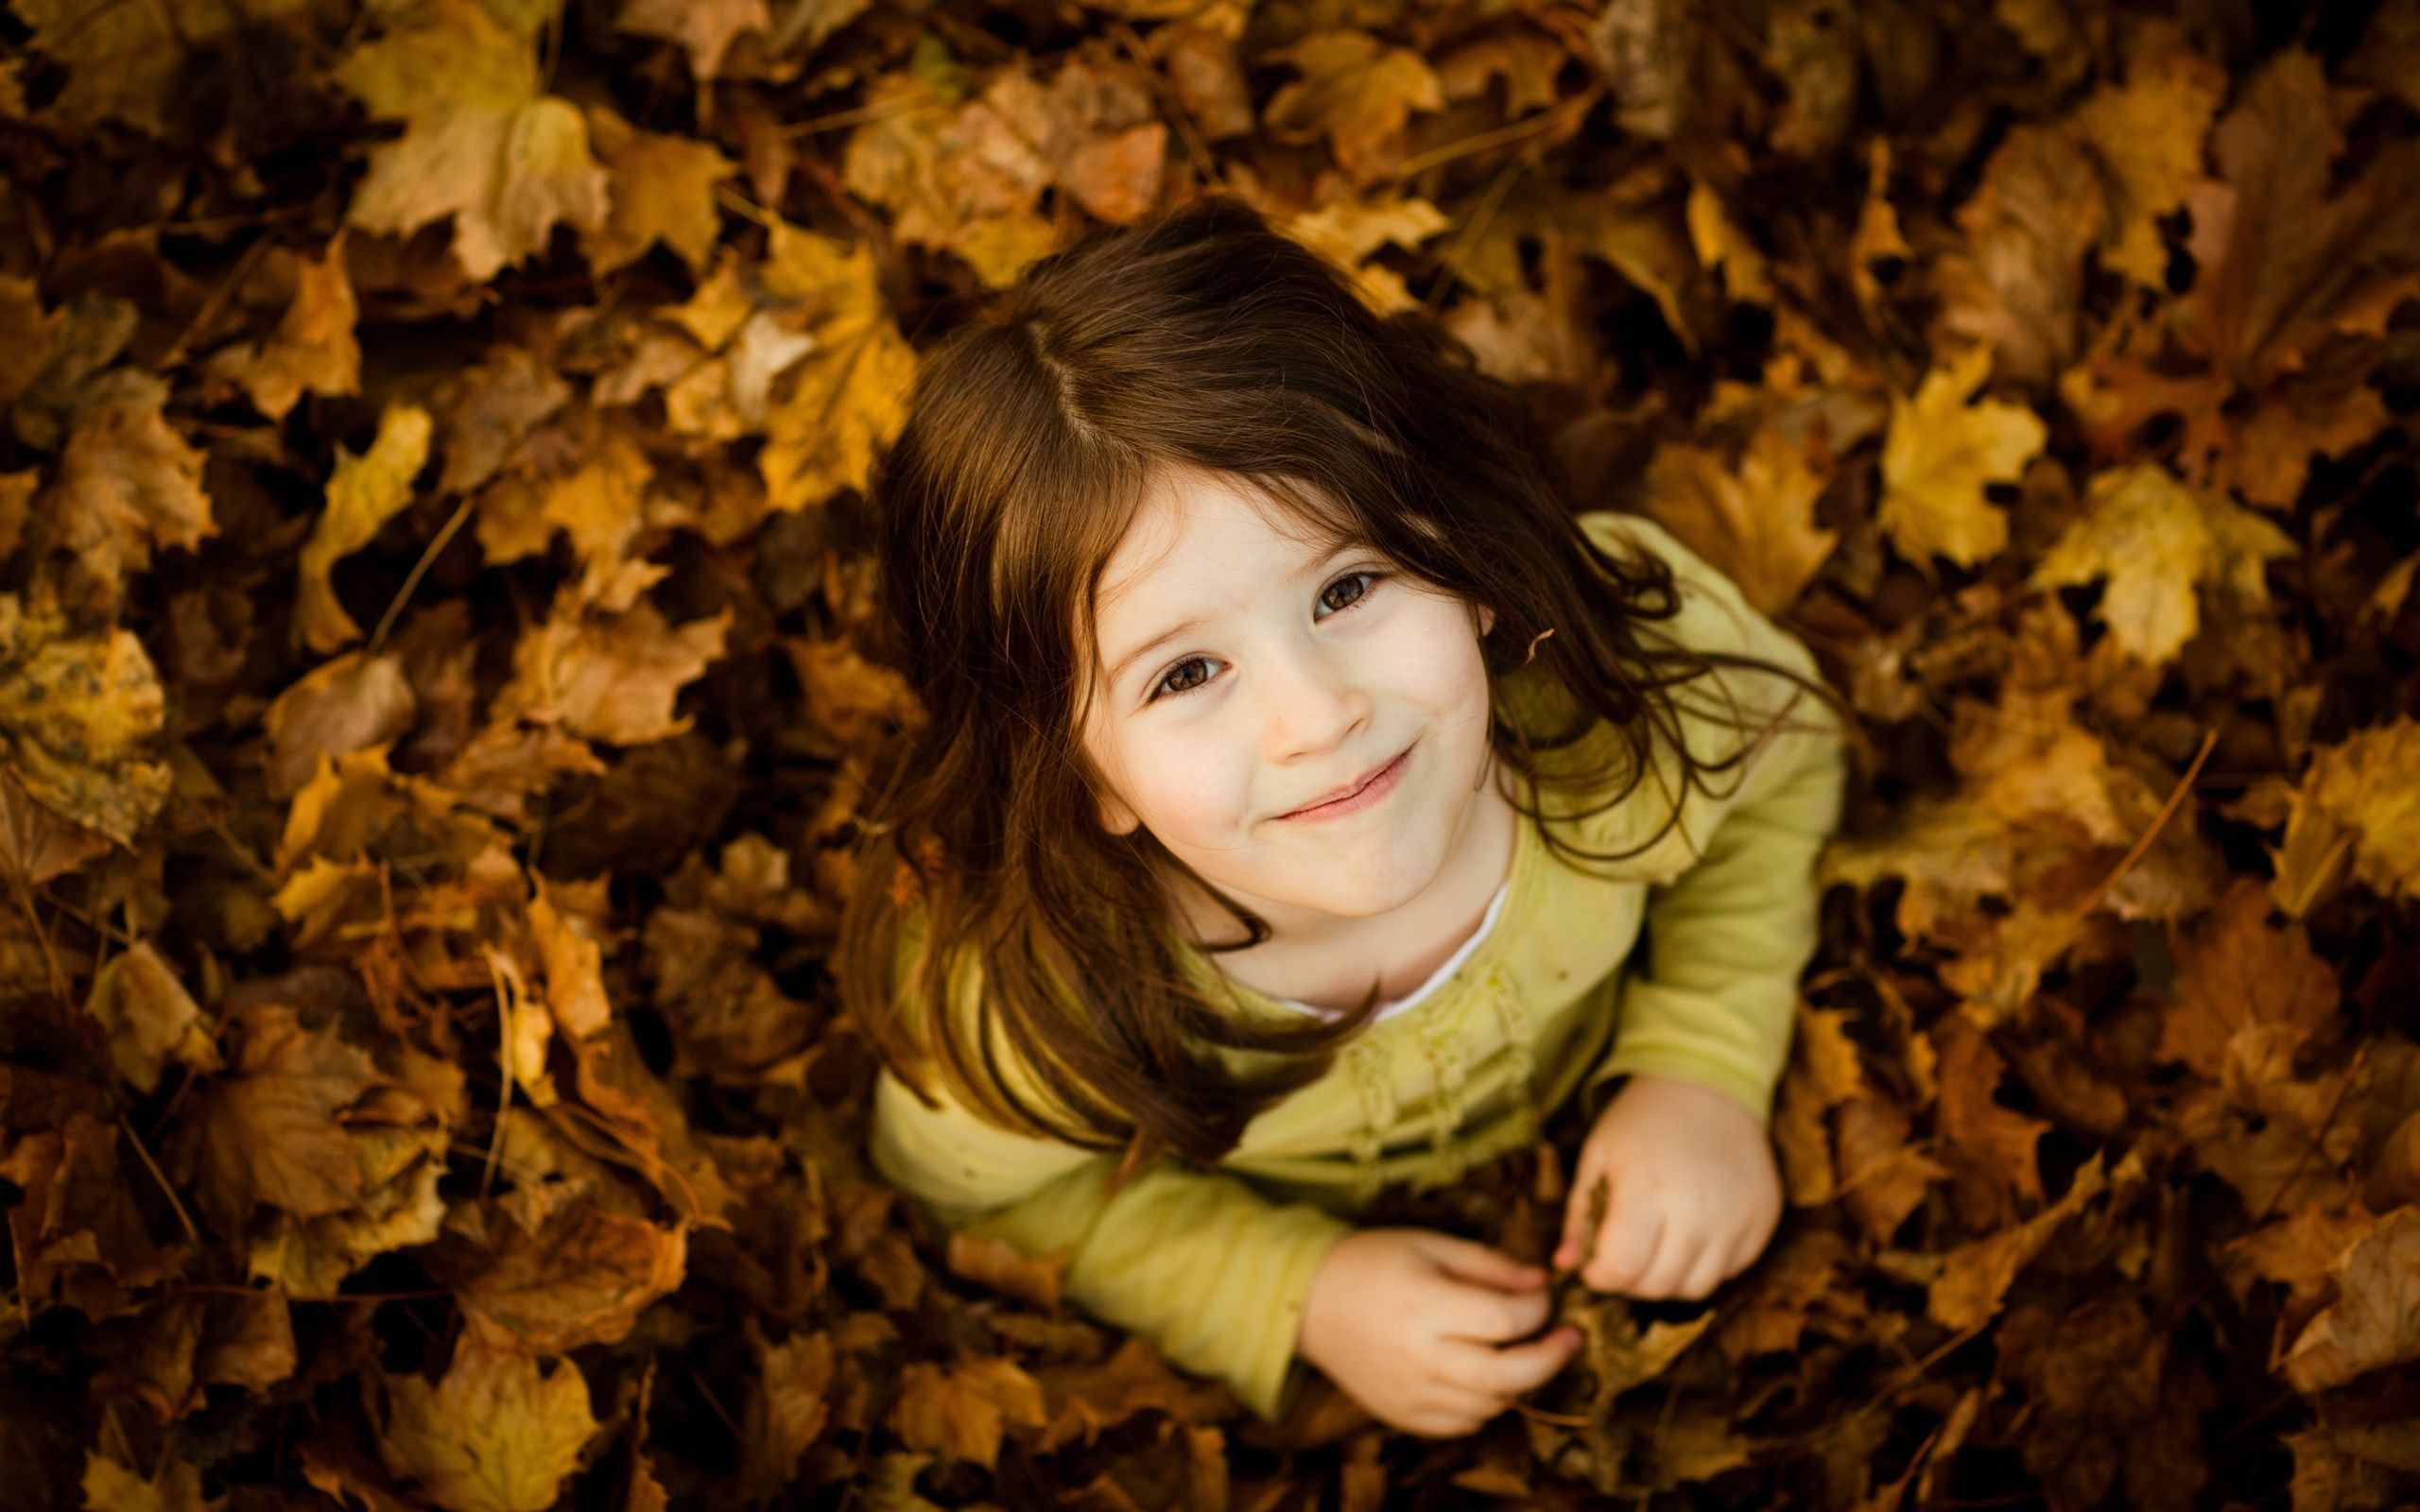 cute smling baby wallpapers : find best latest cute smling baby